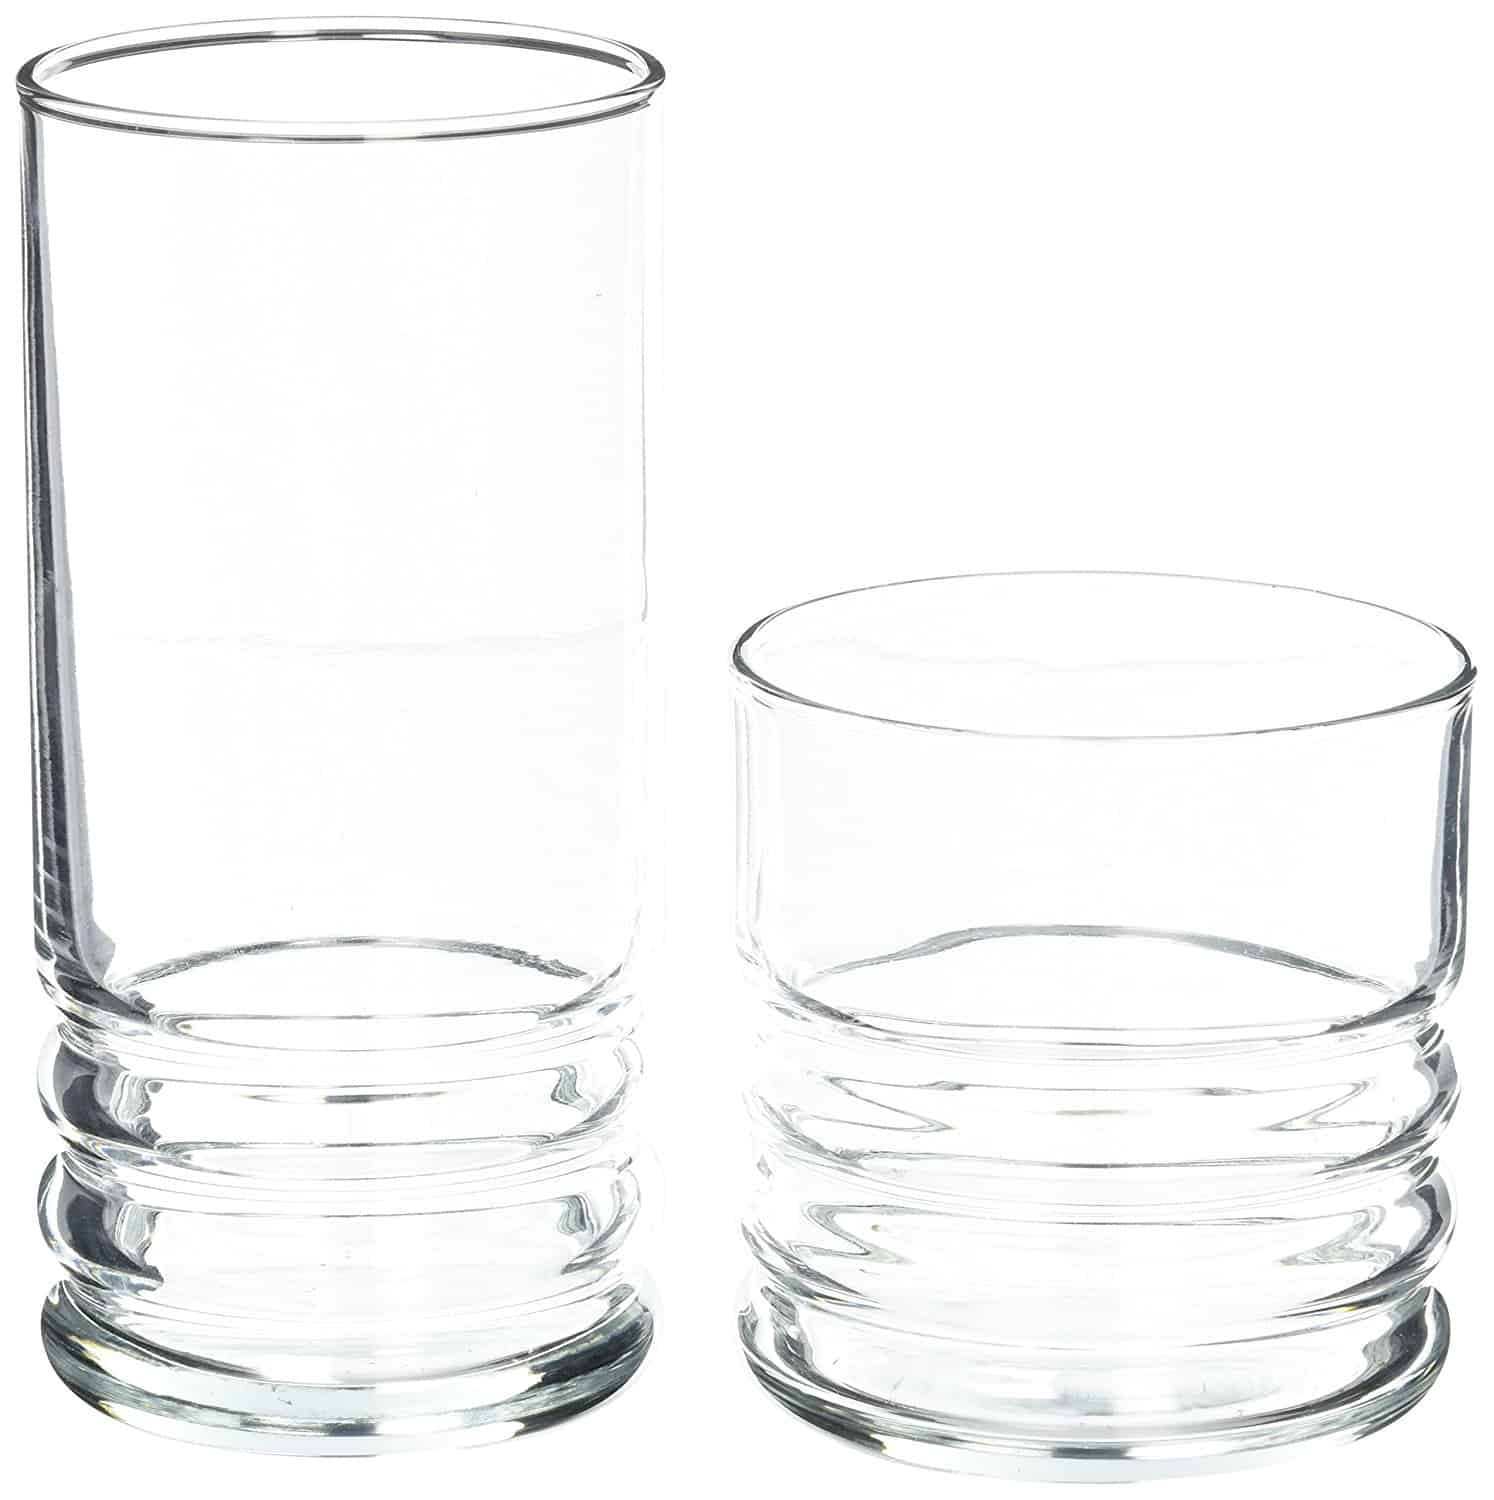 Small and large set of daily glassware with a dishwasher safe feature.